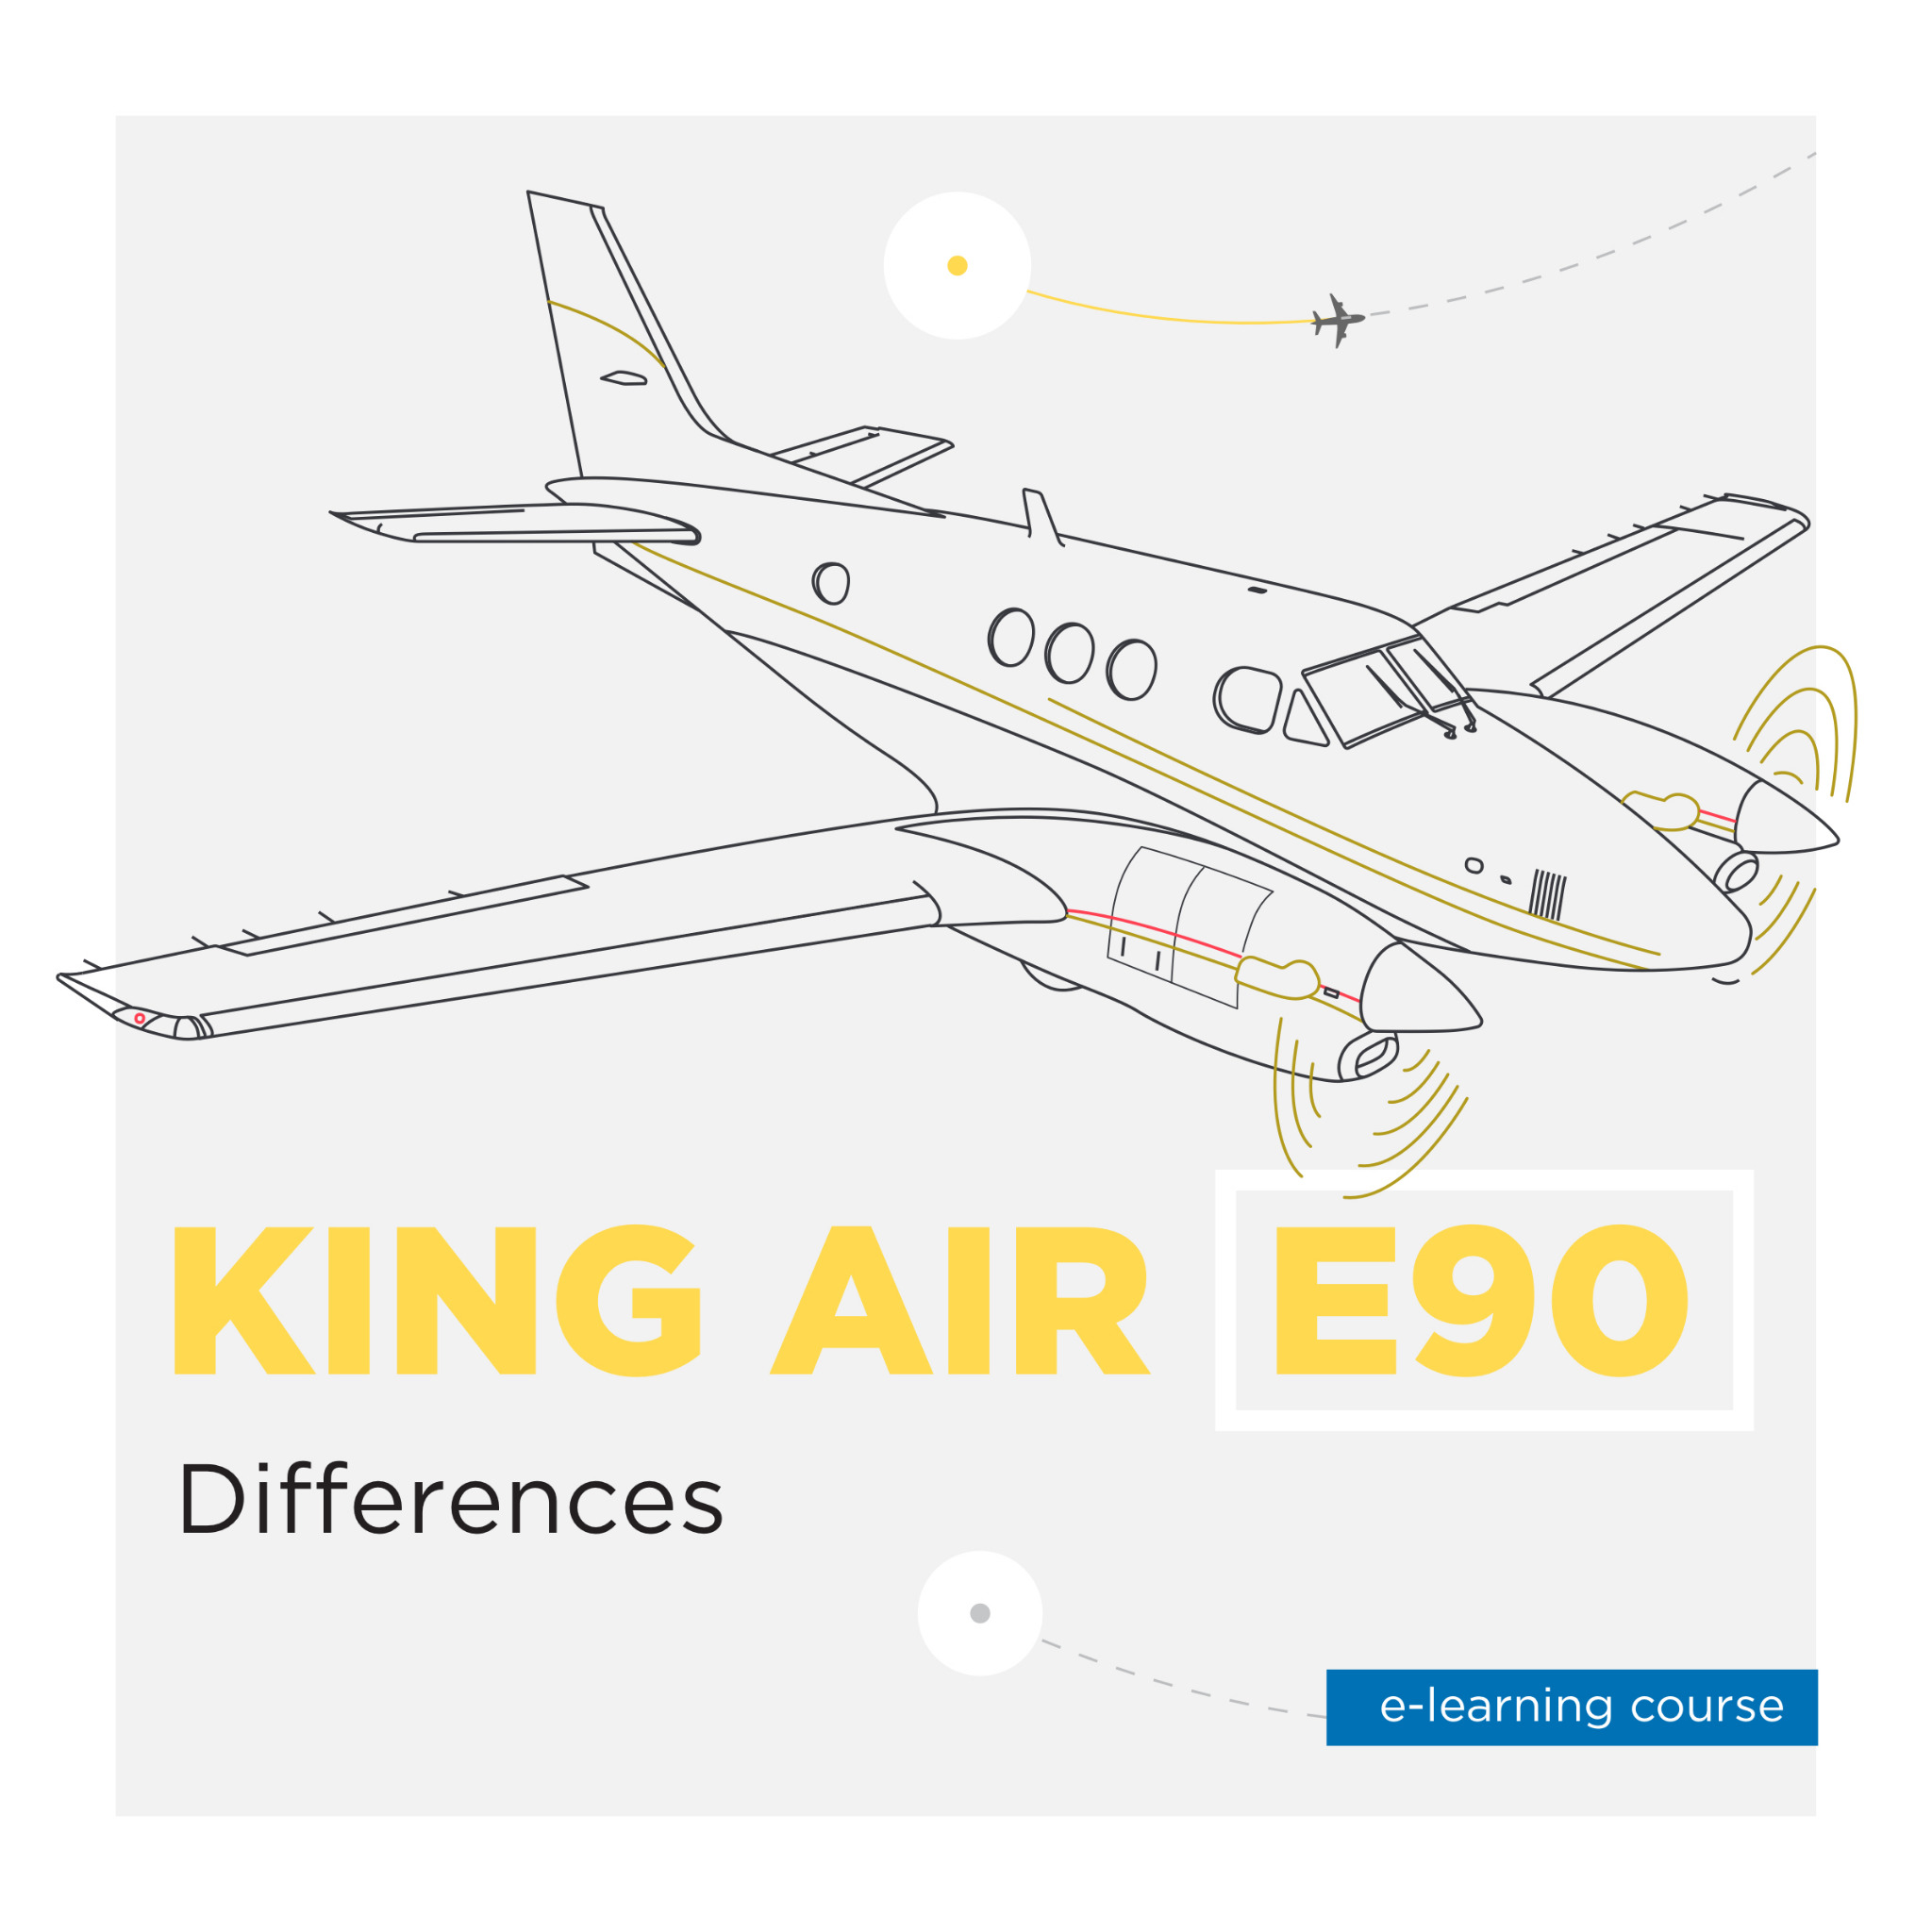 King Air Differences E90 E-Learning Course